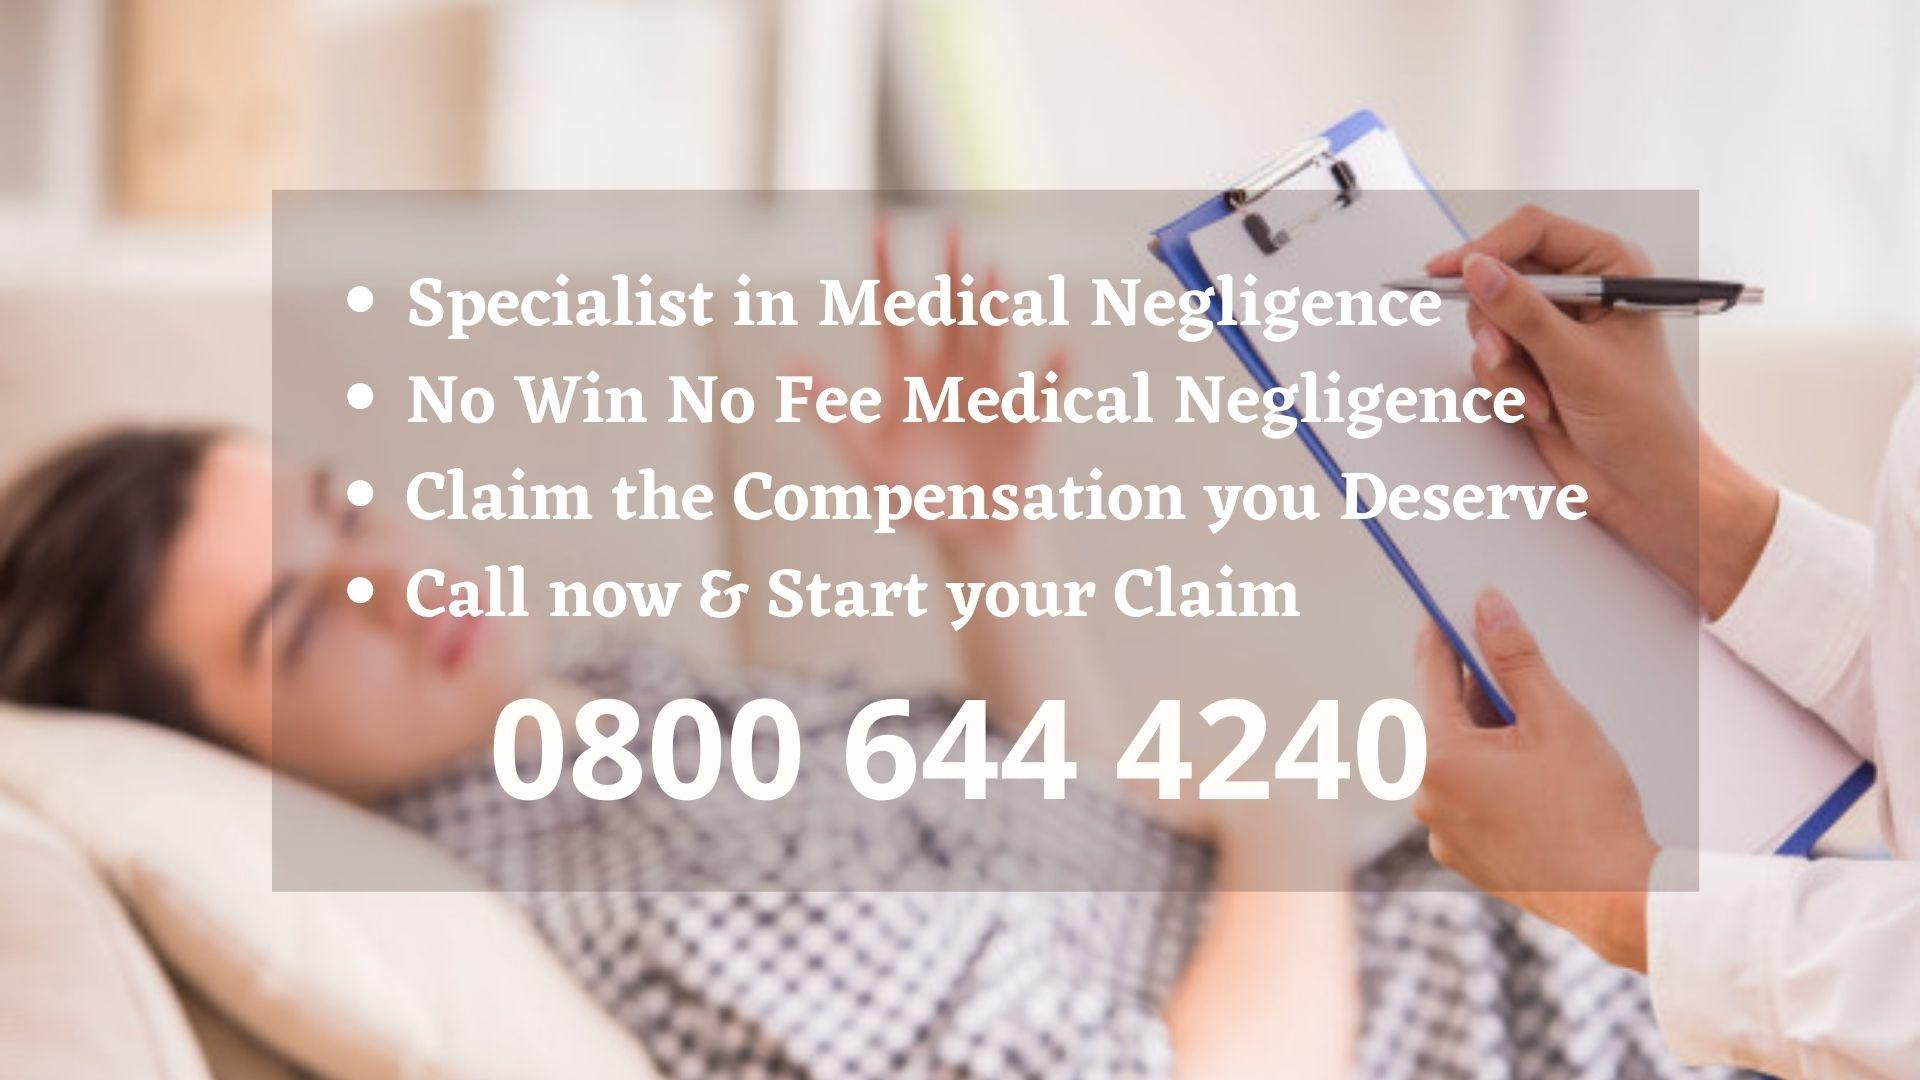 Image - If you or your family member have been injured due to #MedicalNegligence and you want to claim against a medi...